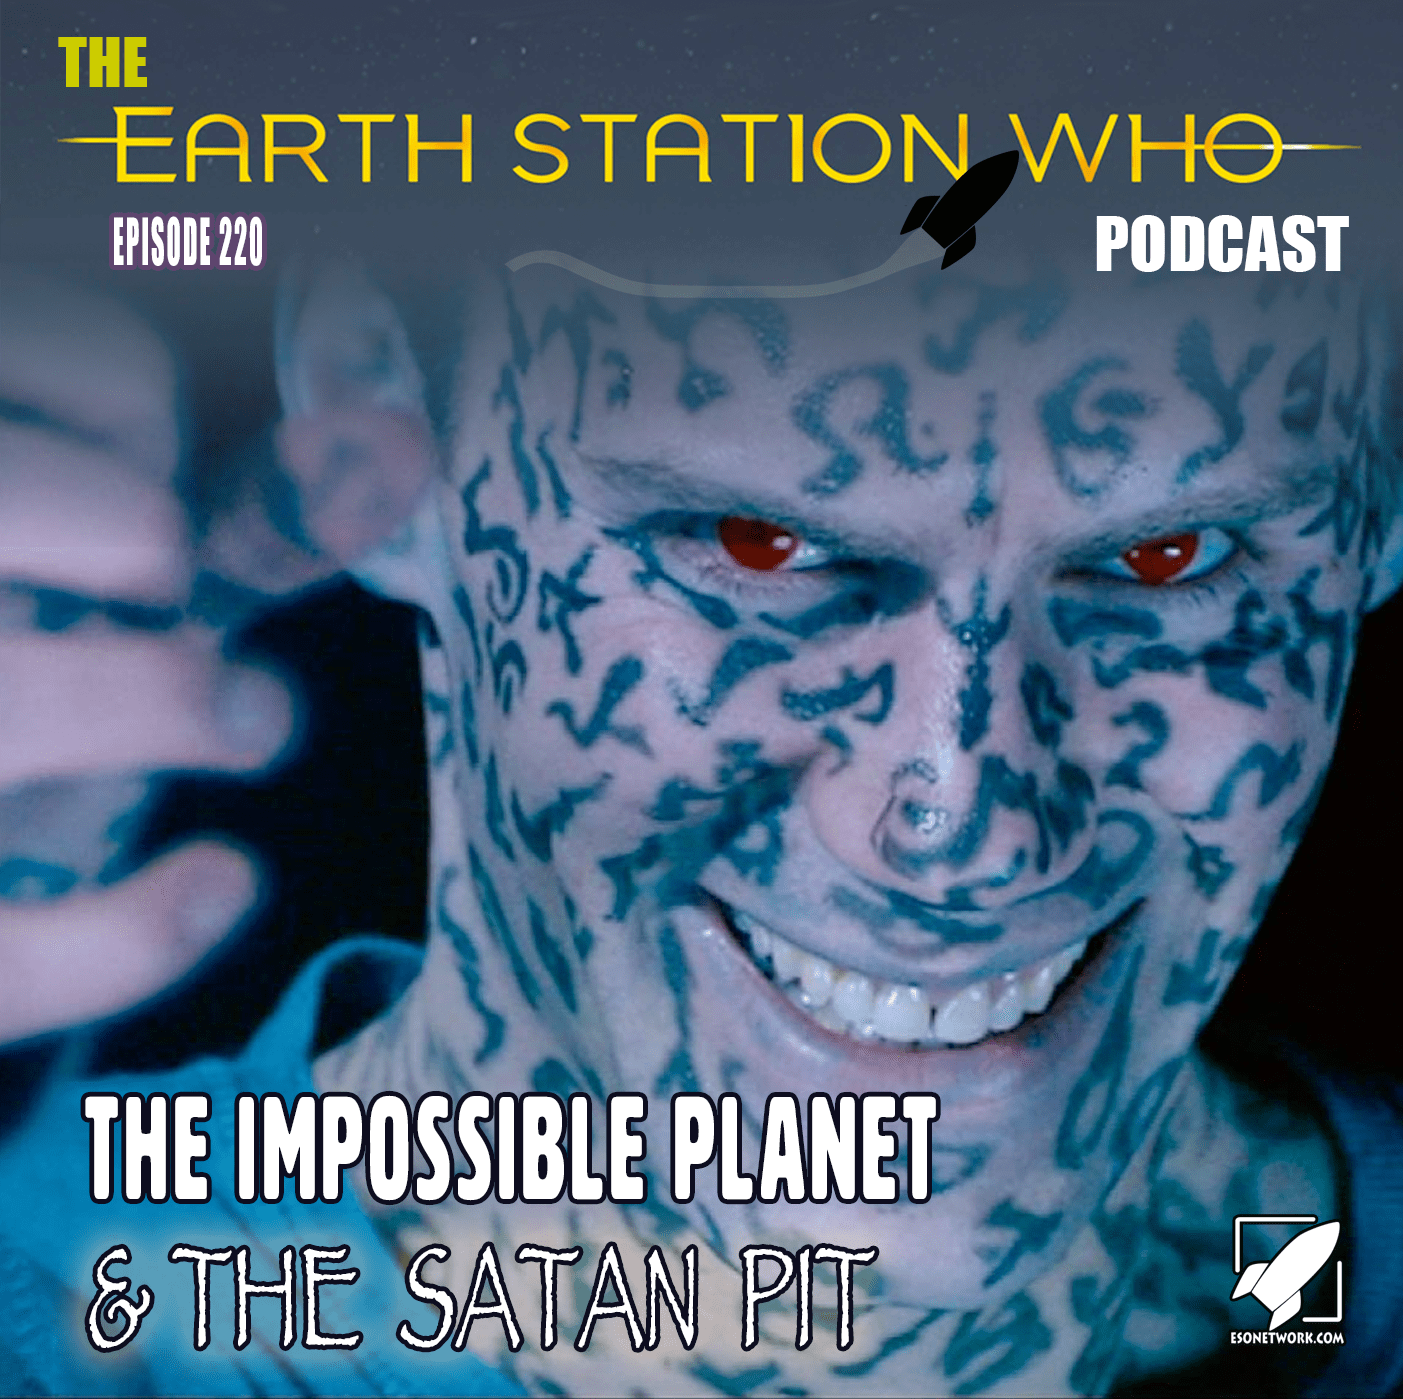 The Earth Station Who. Podcast Ep 220